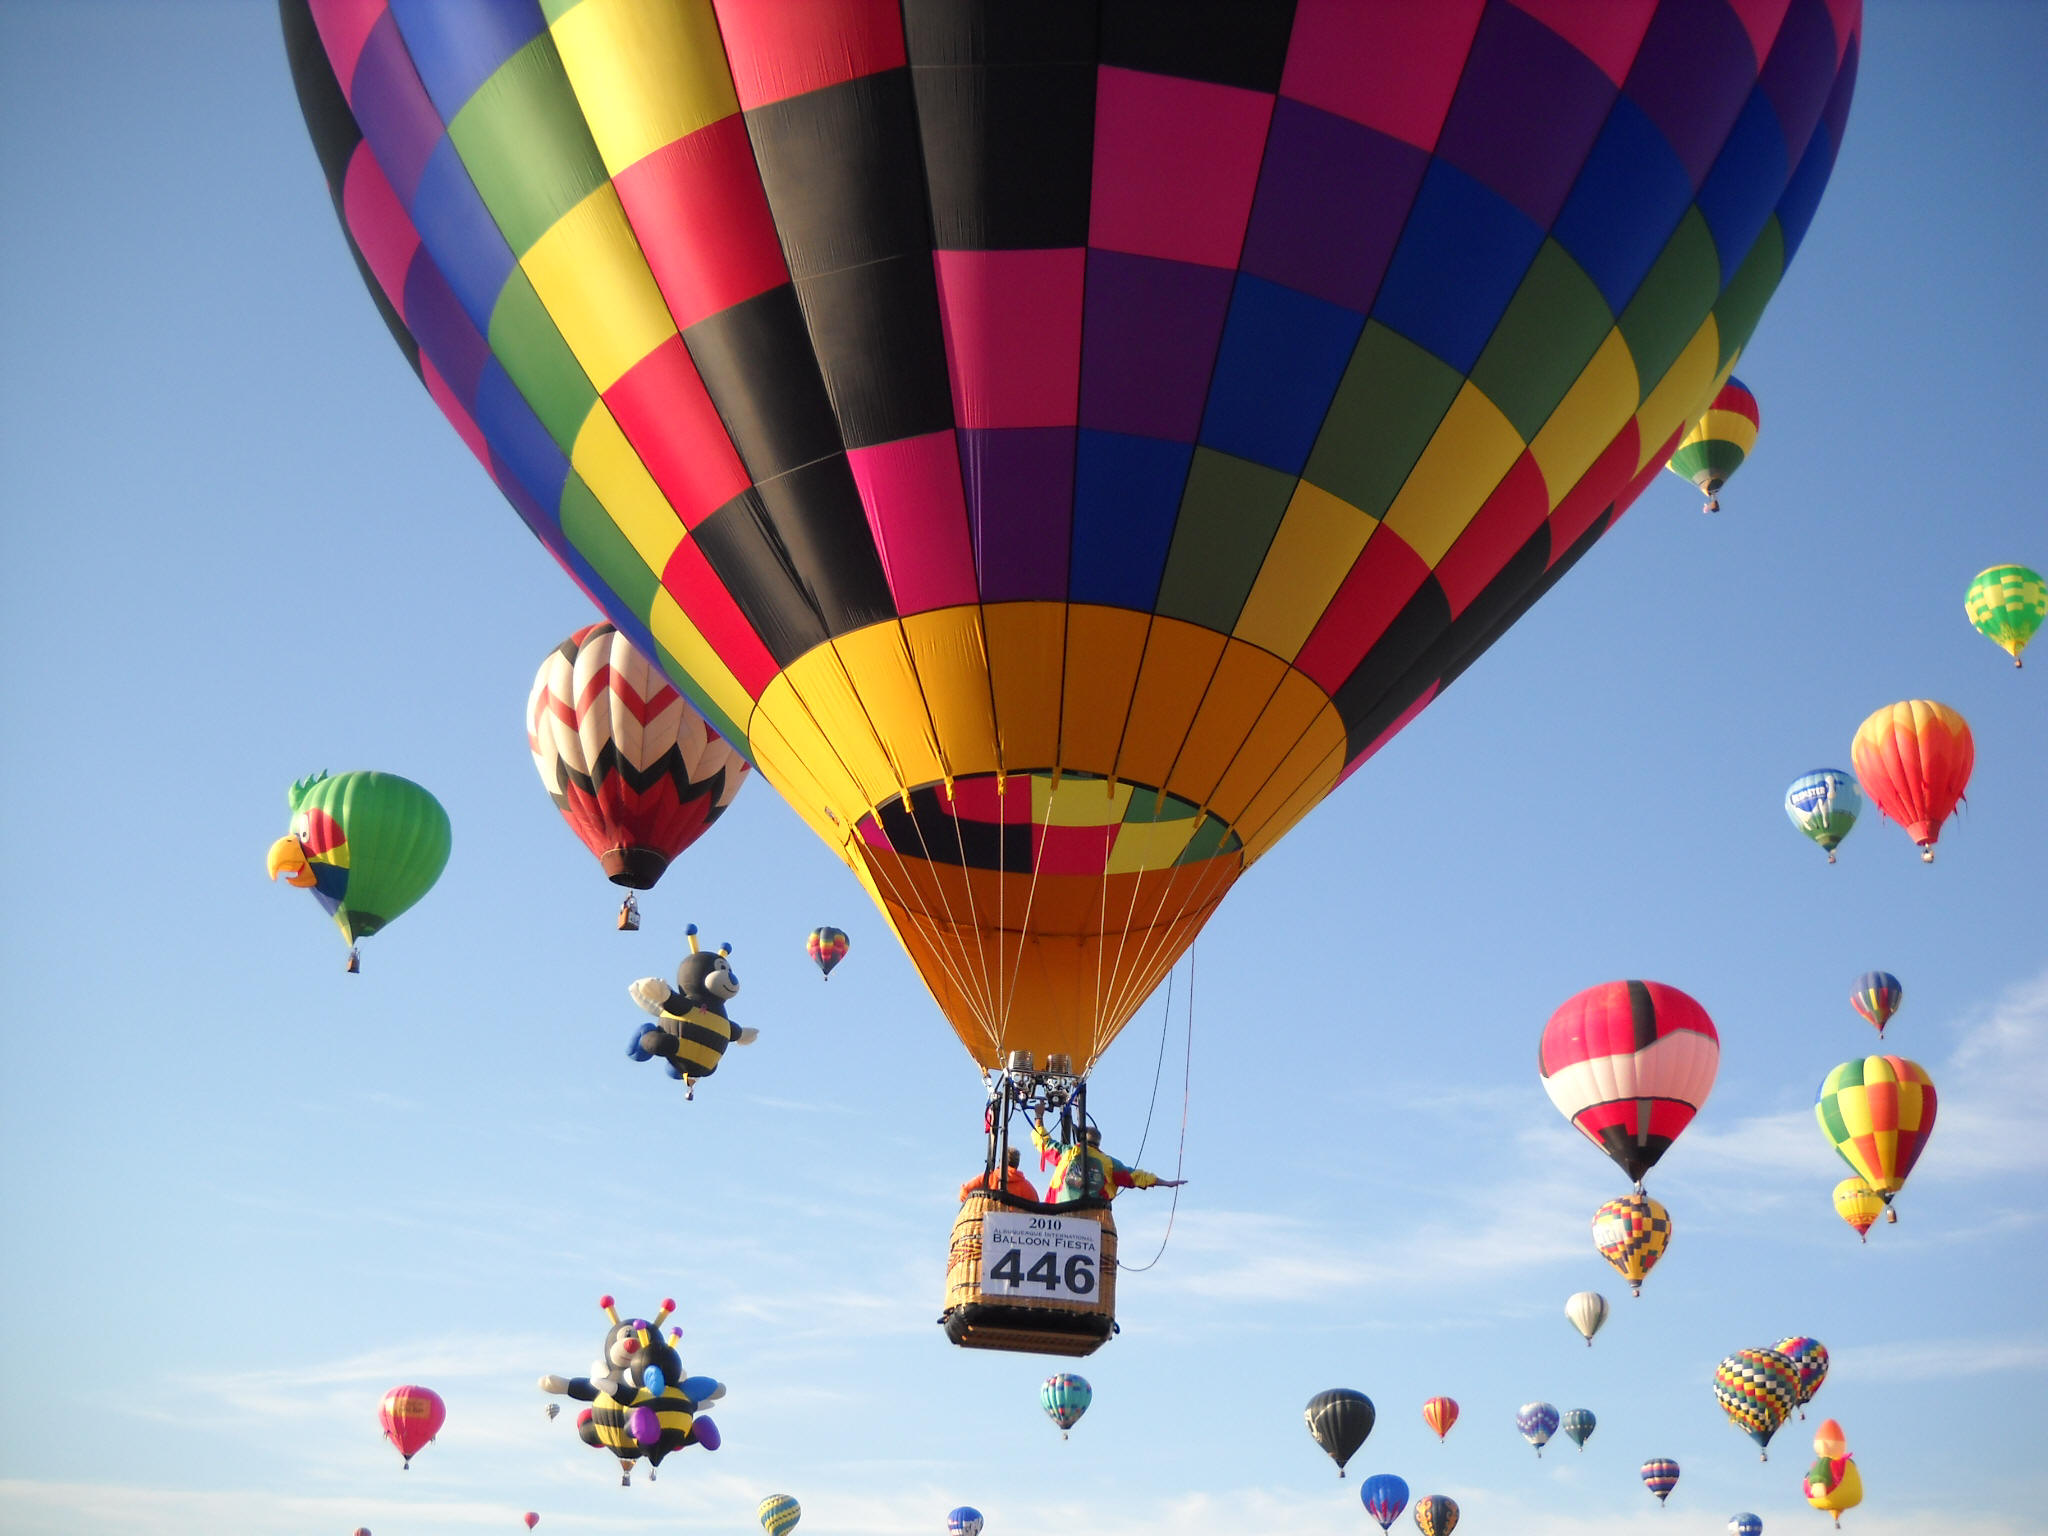 A Hot Air Balloon Proposal